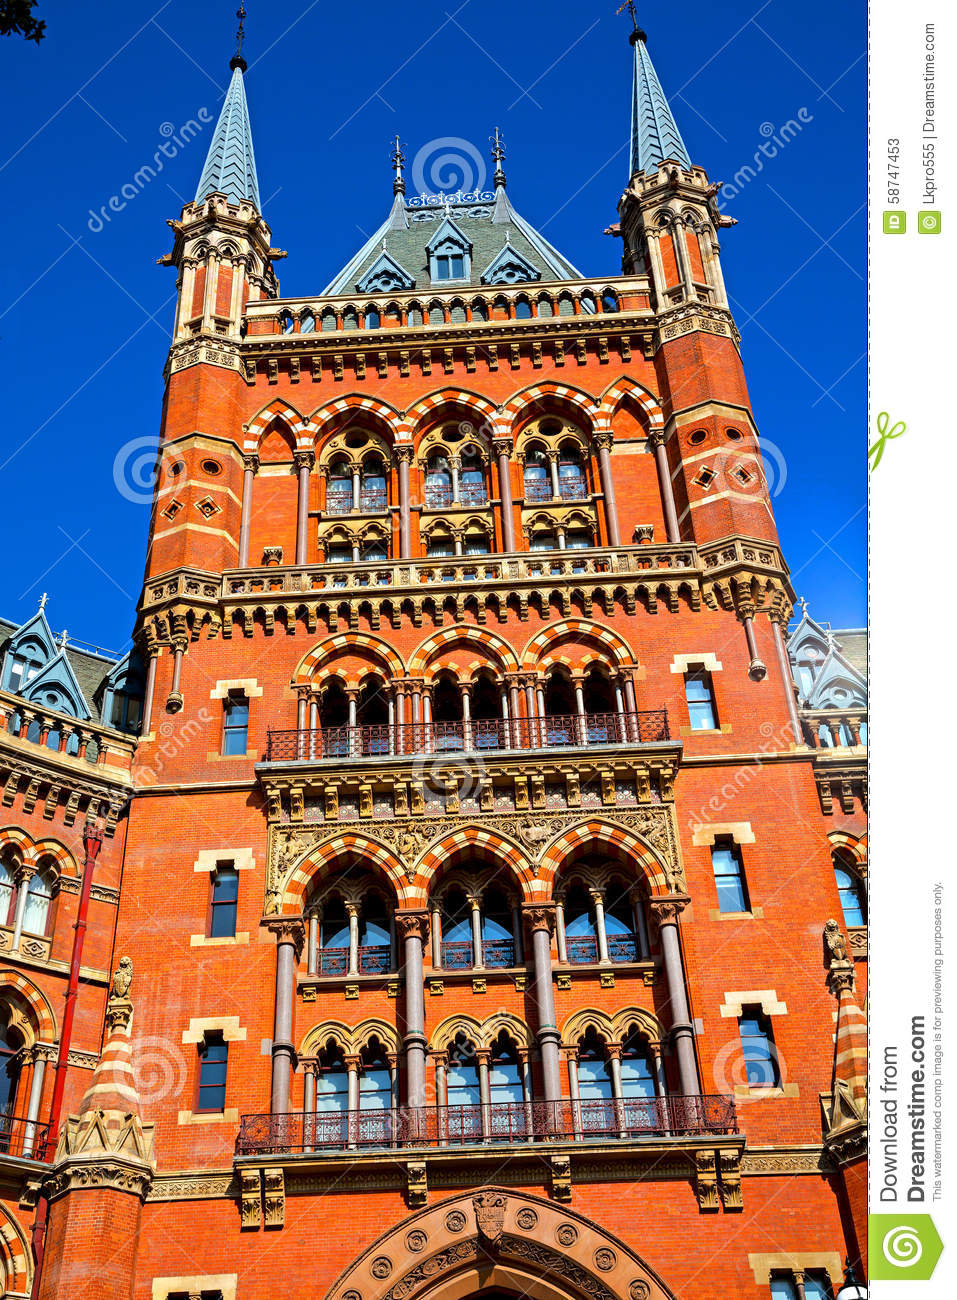 architecture in london d brick exterior wall stock image image of background building 58747453